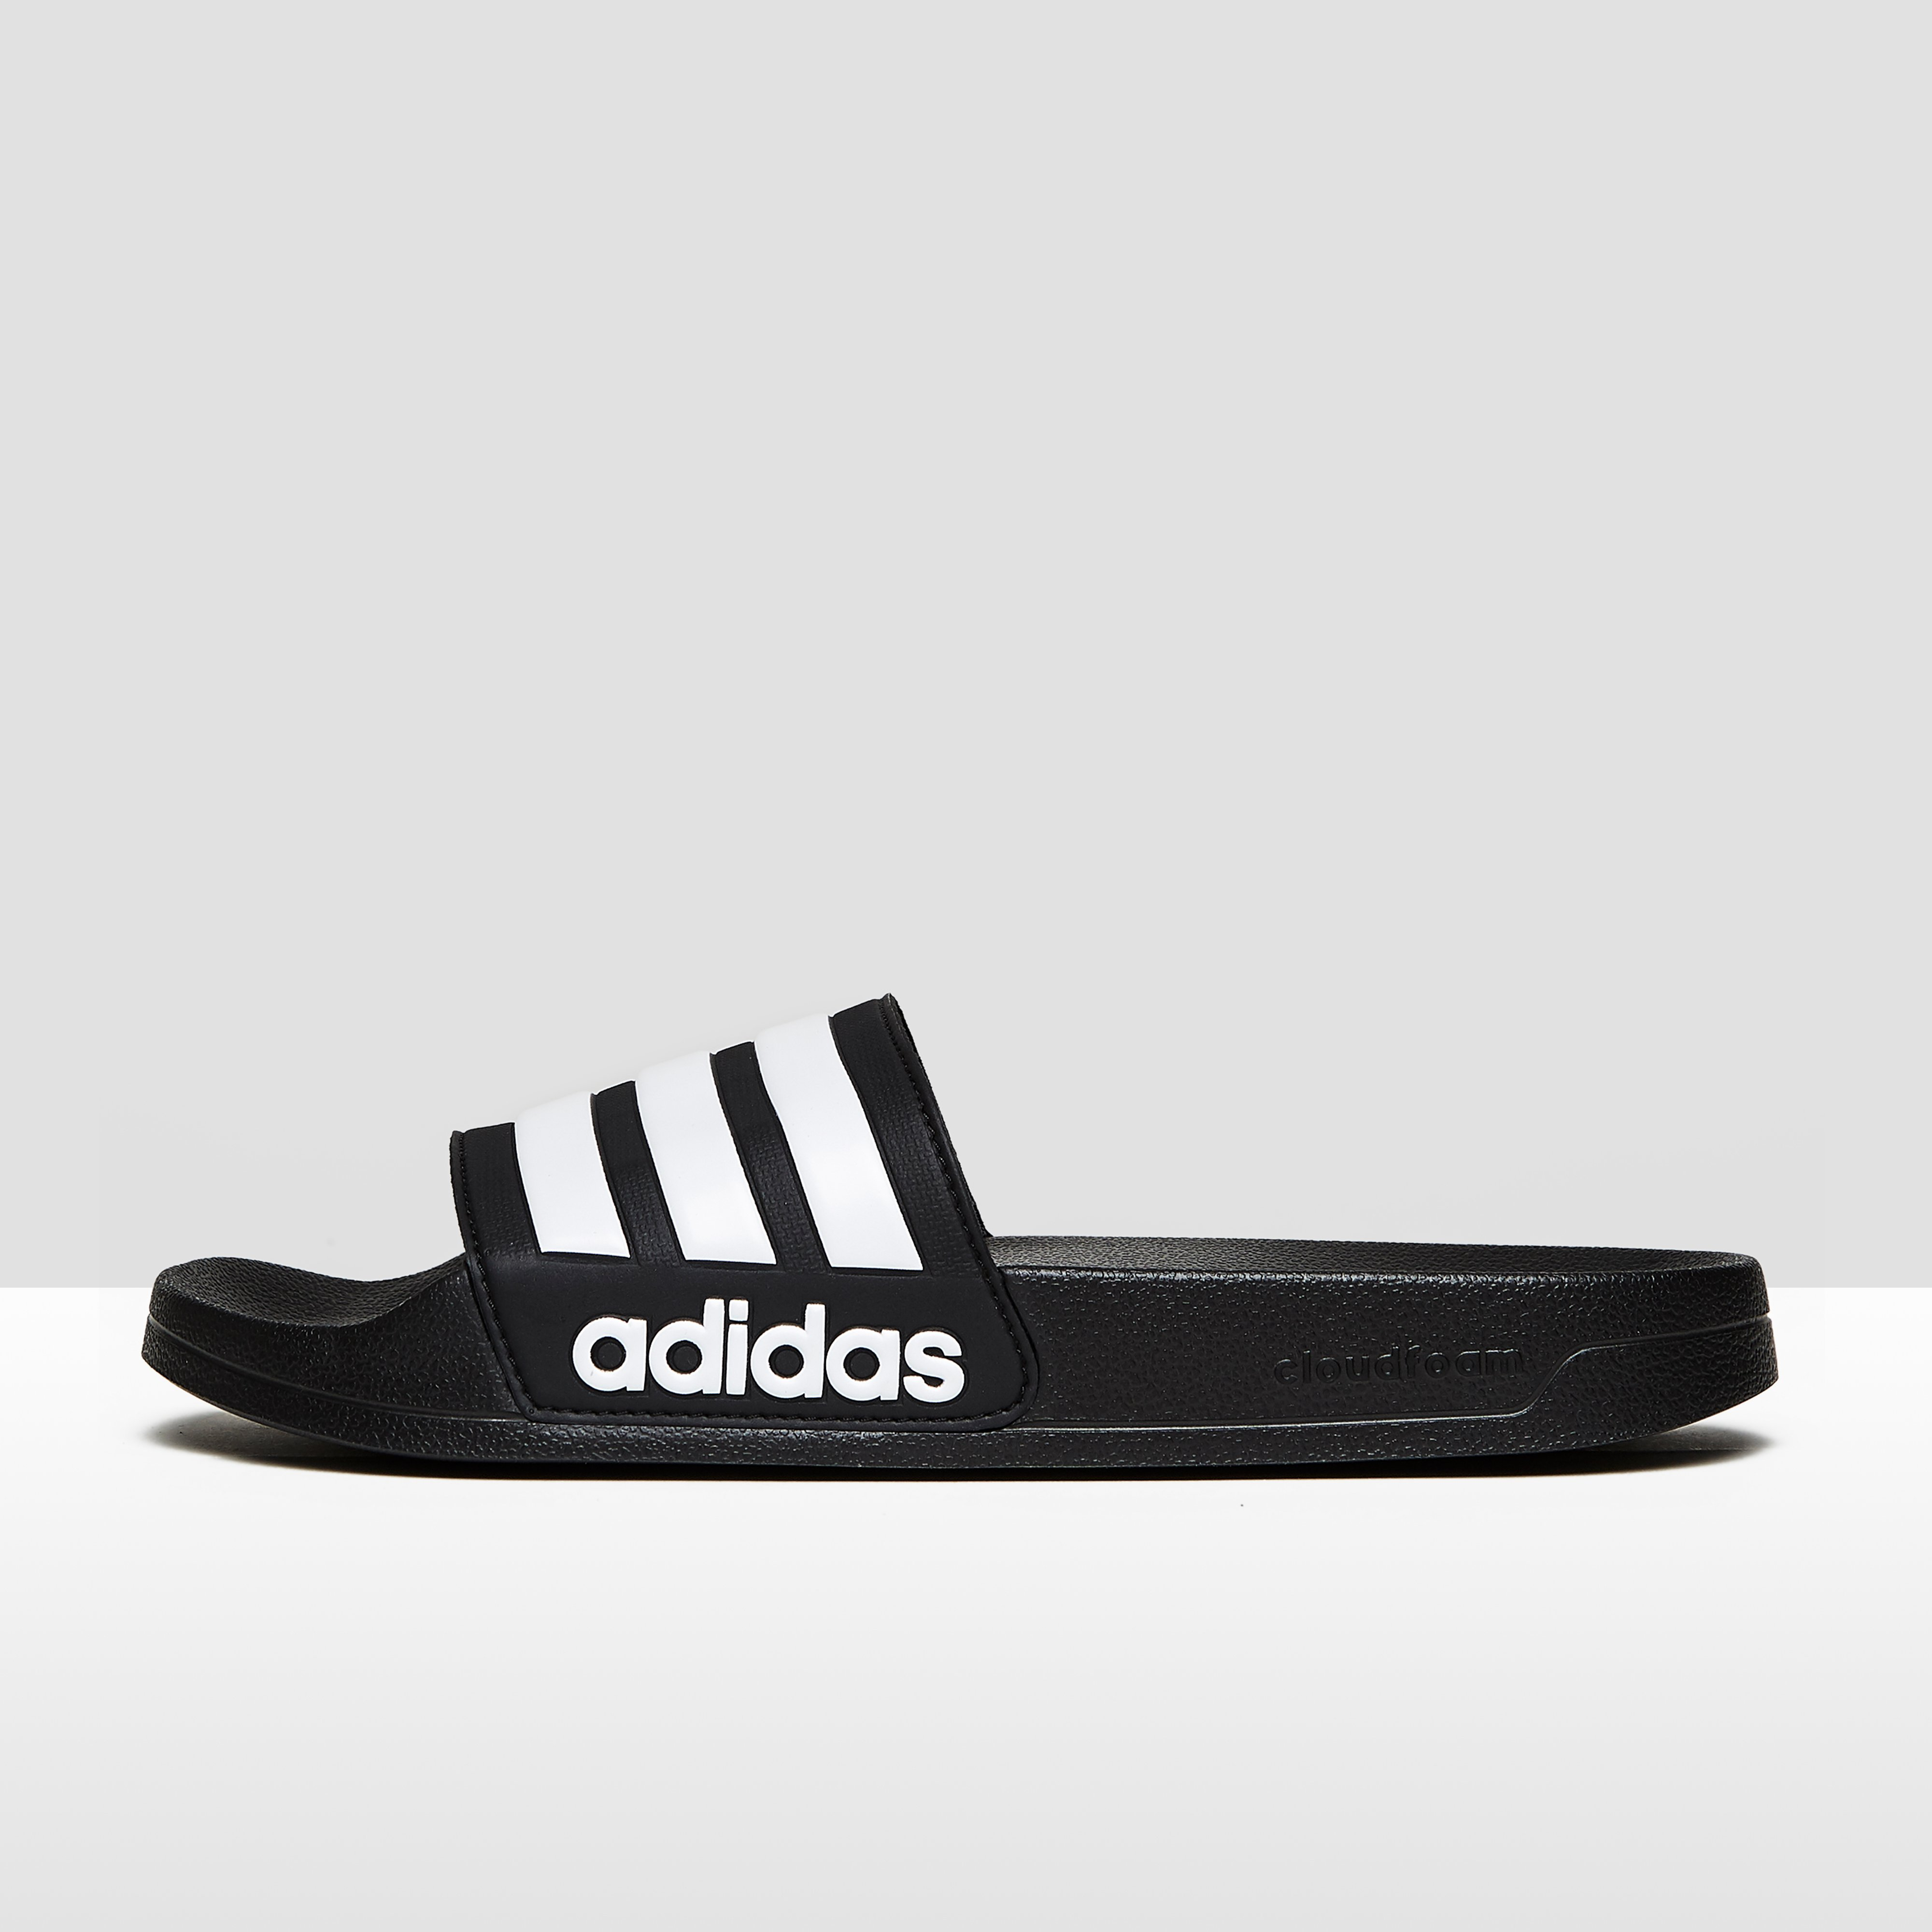 innovative design b64c4 ce2a6 ADIDAS CLOUDFOAM ADILETTE SLIPPERS ZWART HEREN